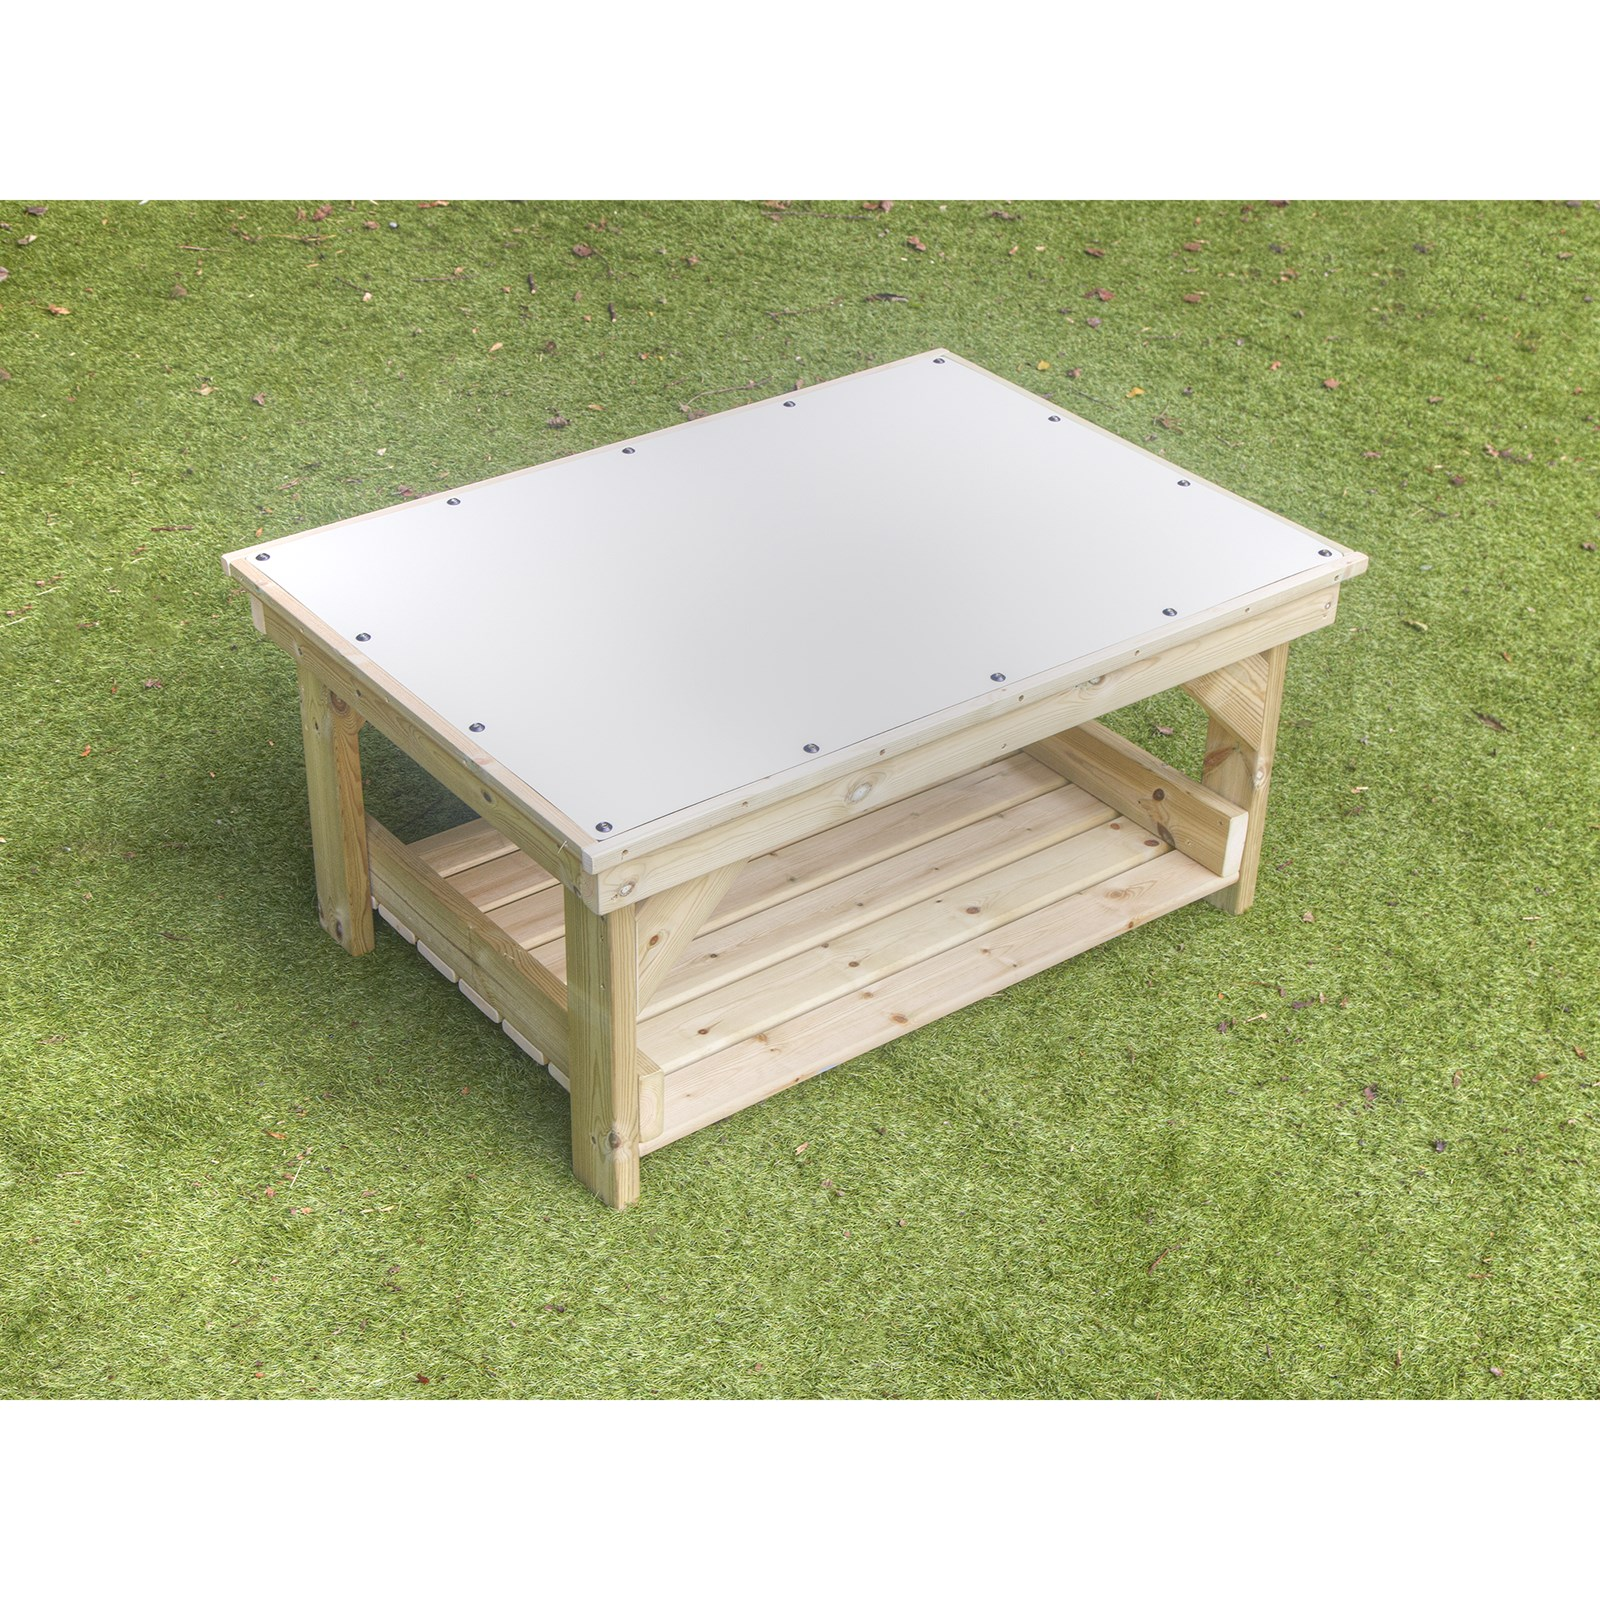 Play Table with Whiteboard Top